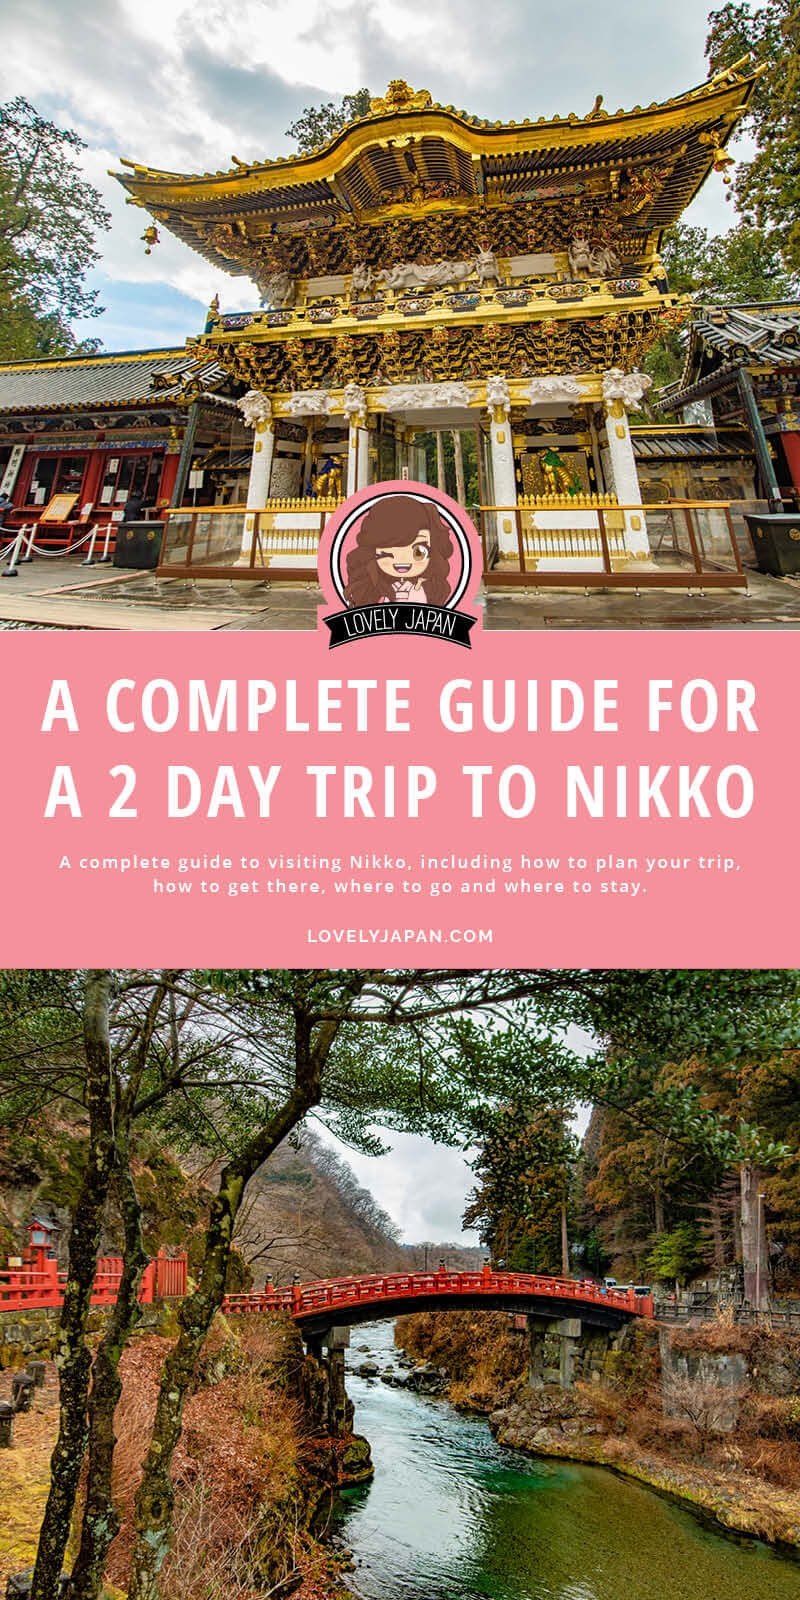 Top Things to do in Nikko